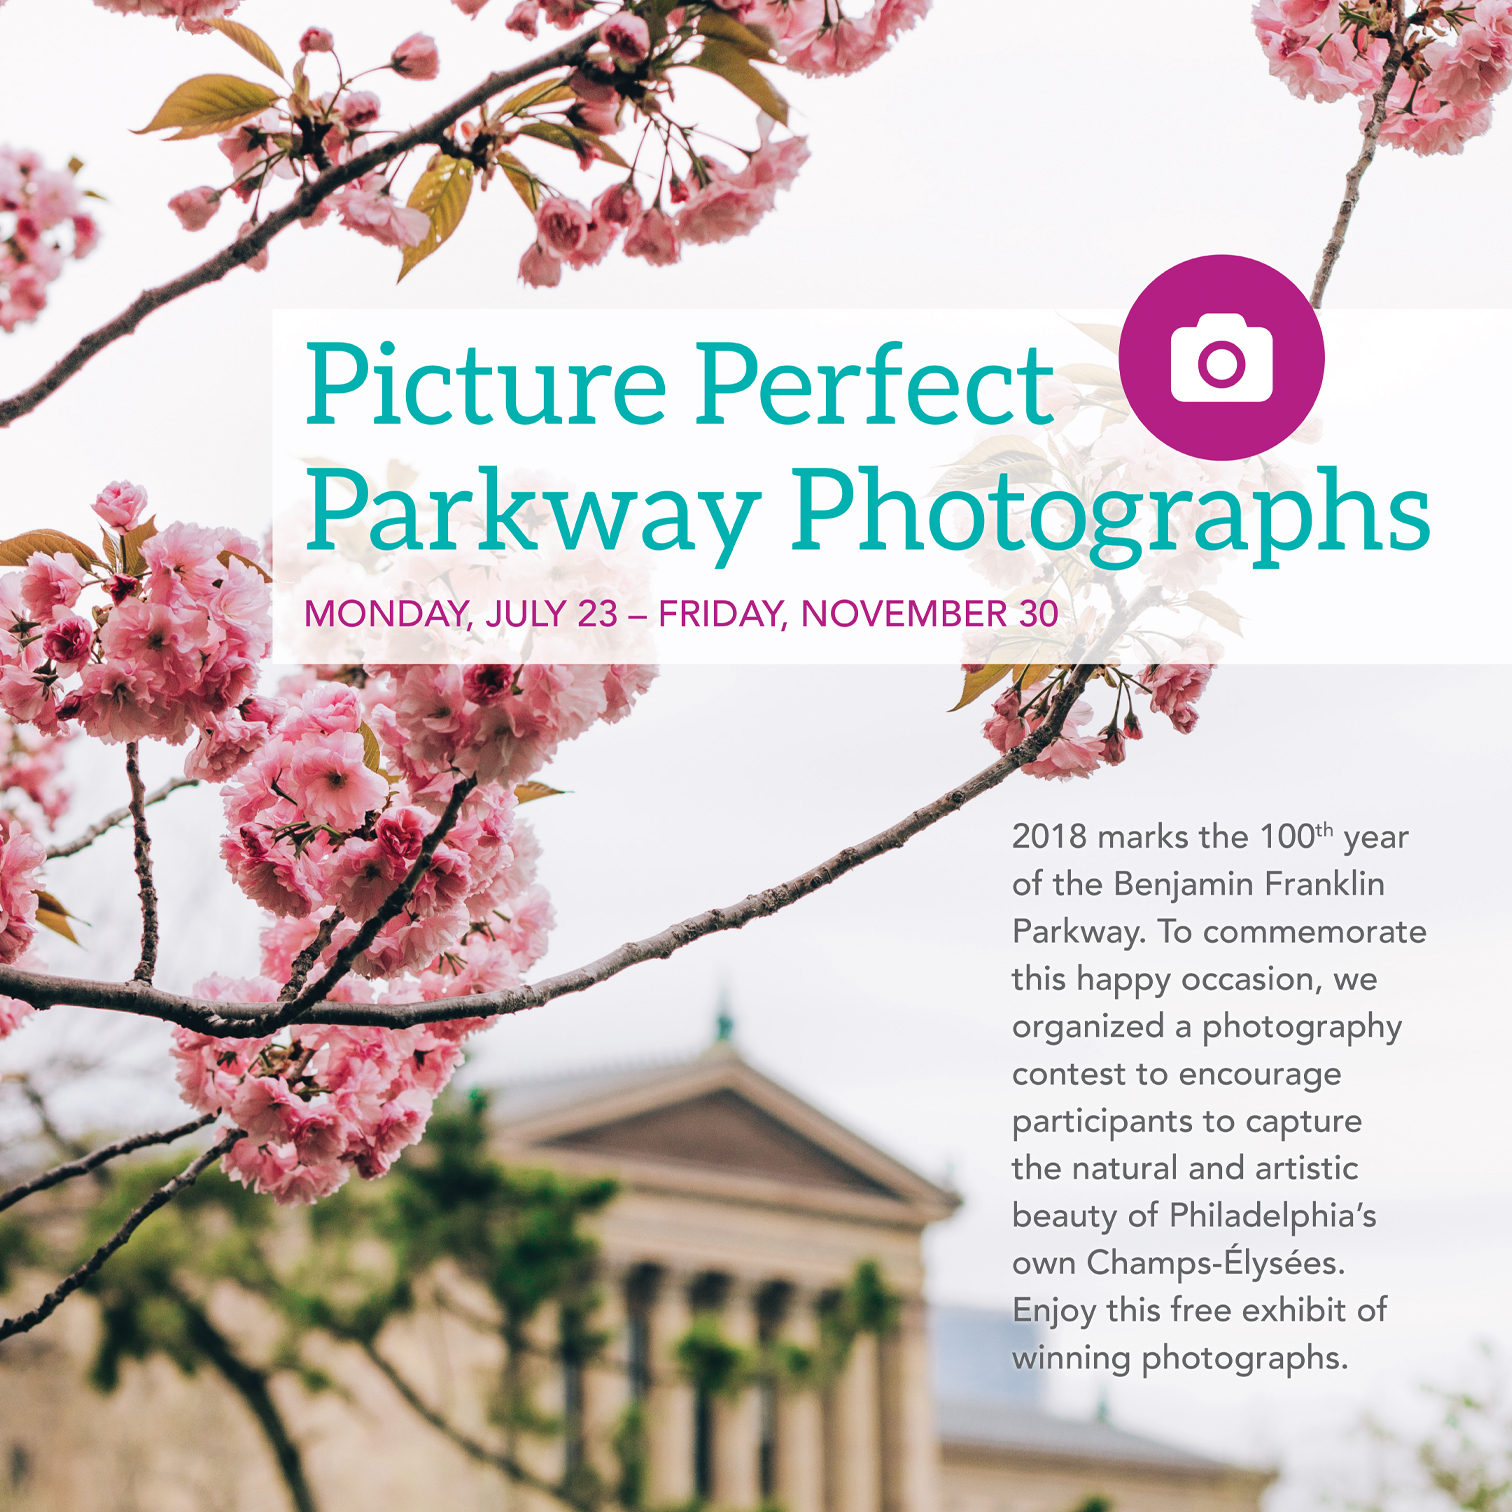 Poster for the Picture Perfect Parkway Photographs exhibit in the PHS McLean Library.